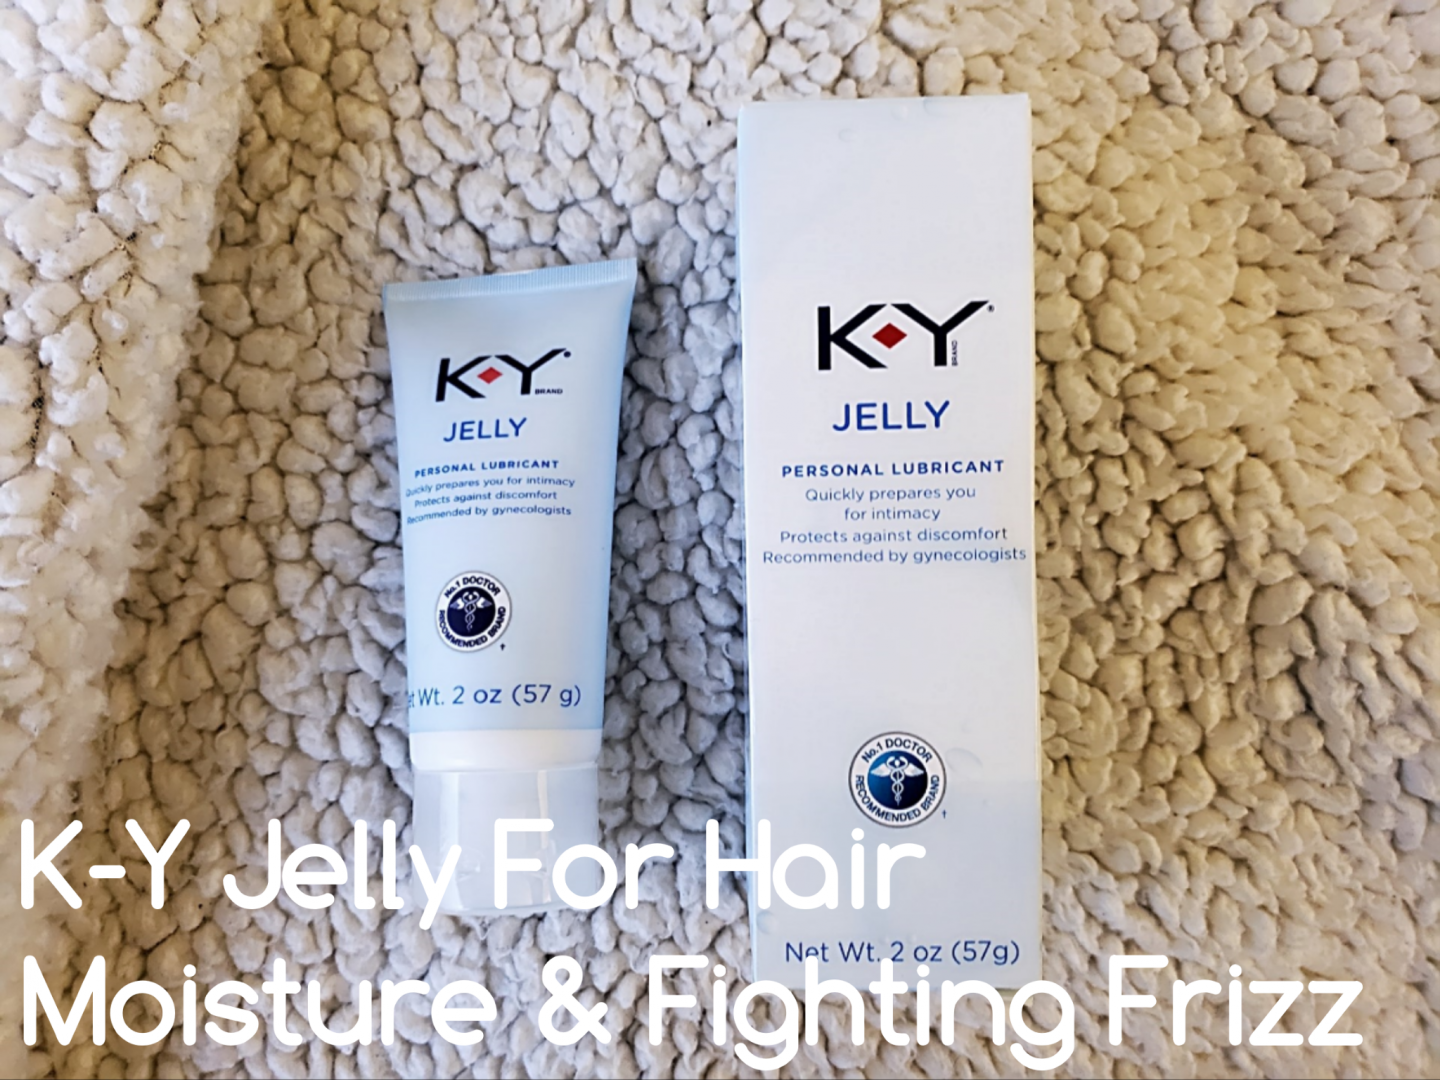 K-Y Jelly is being used for fighting frizz. ky jelly is a water-based, water-soluble personal lubricant for sex, but naturals are loving it for hair!